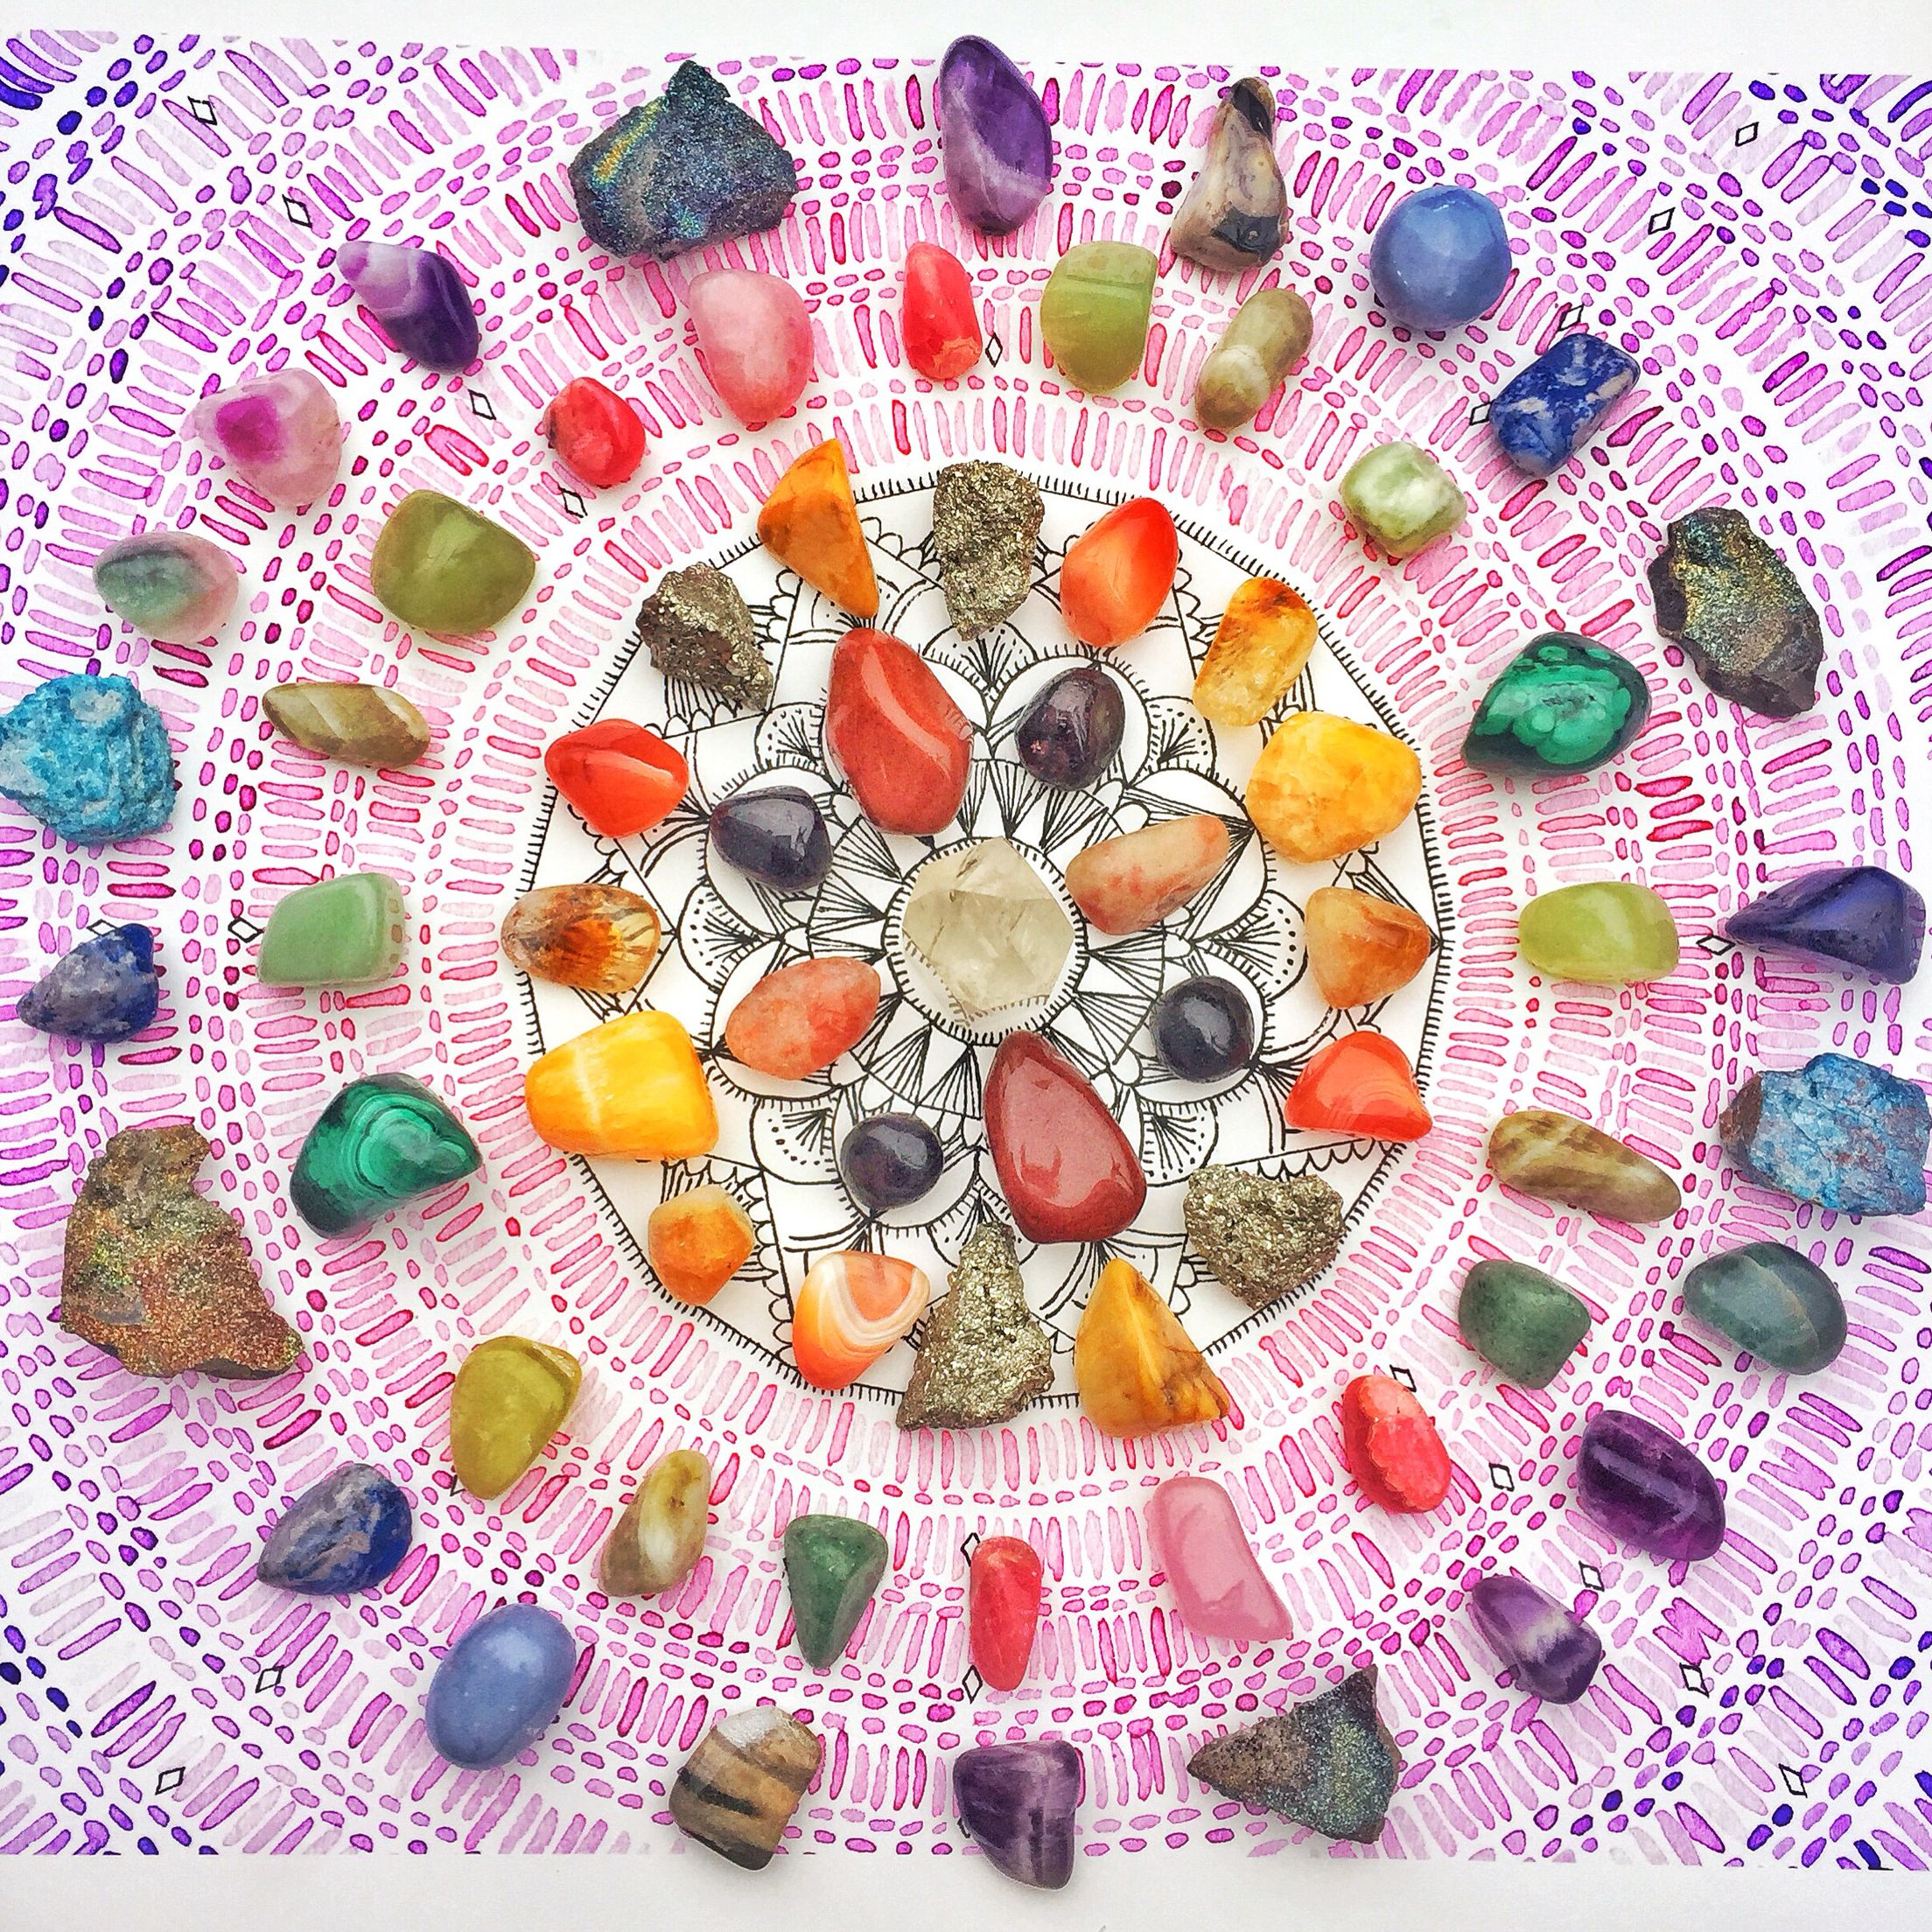 When is rains, look for rainbows. When it's dark, look for the stars. Create a rainbow crystal grid to brighten your day!